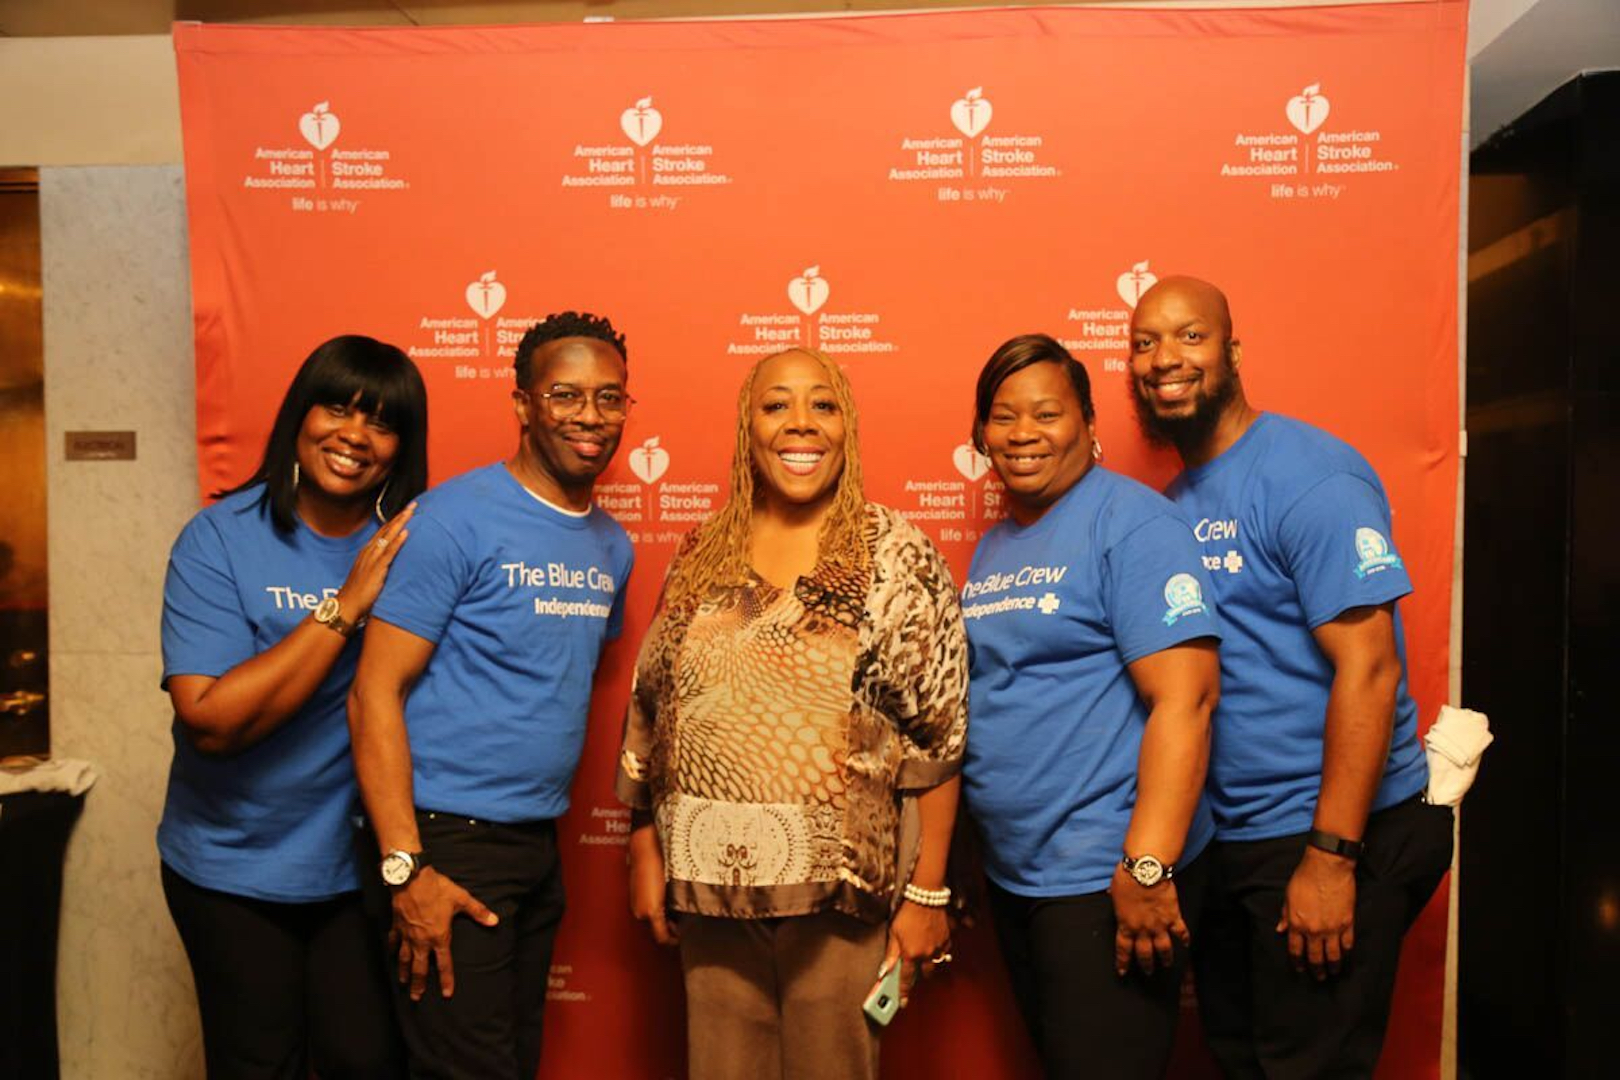 American Heart Association honoree and stroke survivor Patty Jackson, local WDAS radio-host and DJ, photographed with fans. Image provided by Caitlin Conran, Director of Communications and Marketing of the Great River Affiliate.